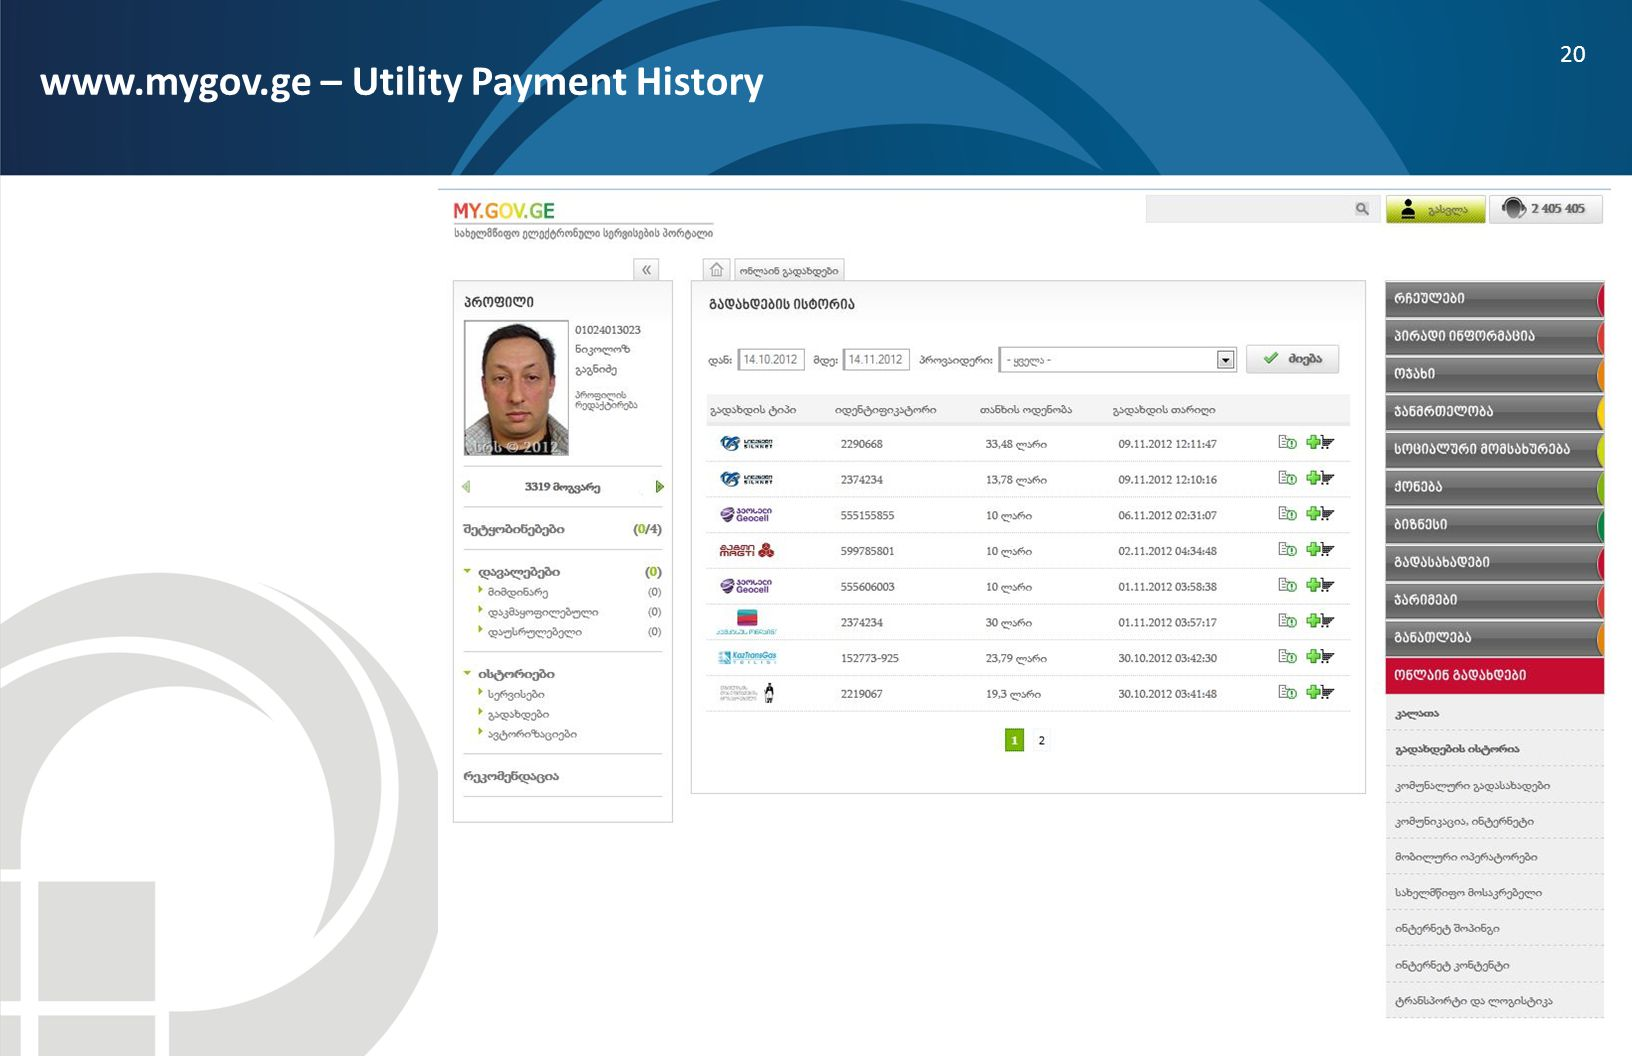 www.mygov.ge – Utility Payment History